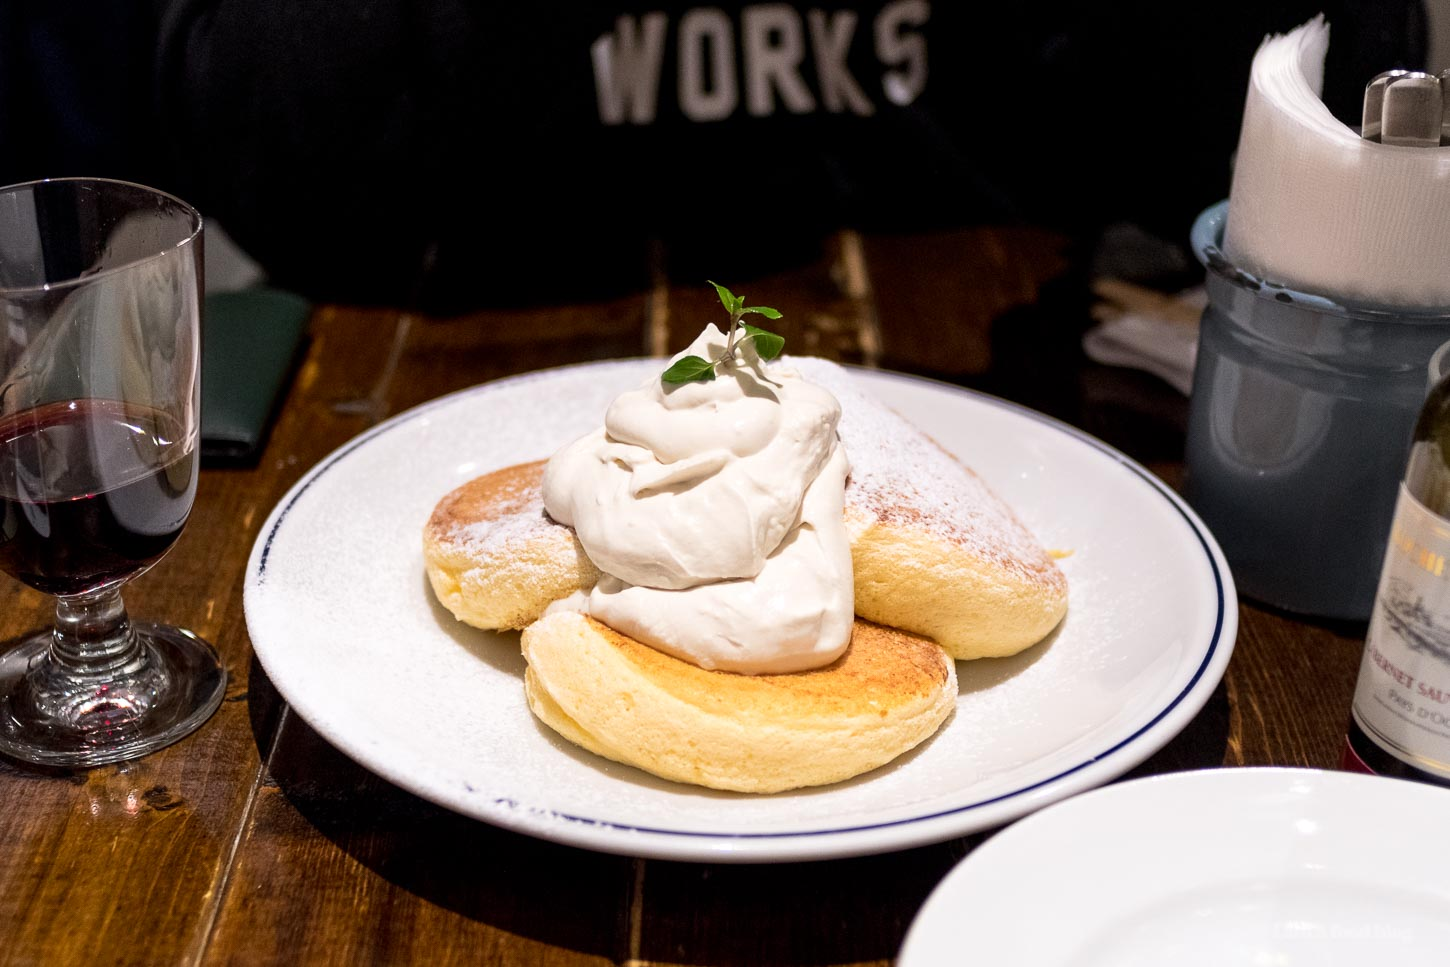 Tokyo Food Guide: Where to Eat Fluffy Japanese Pancakes in Tokyo